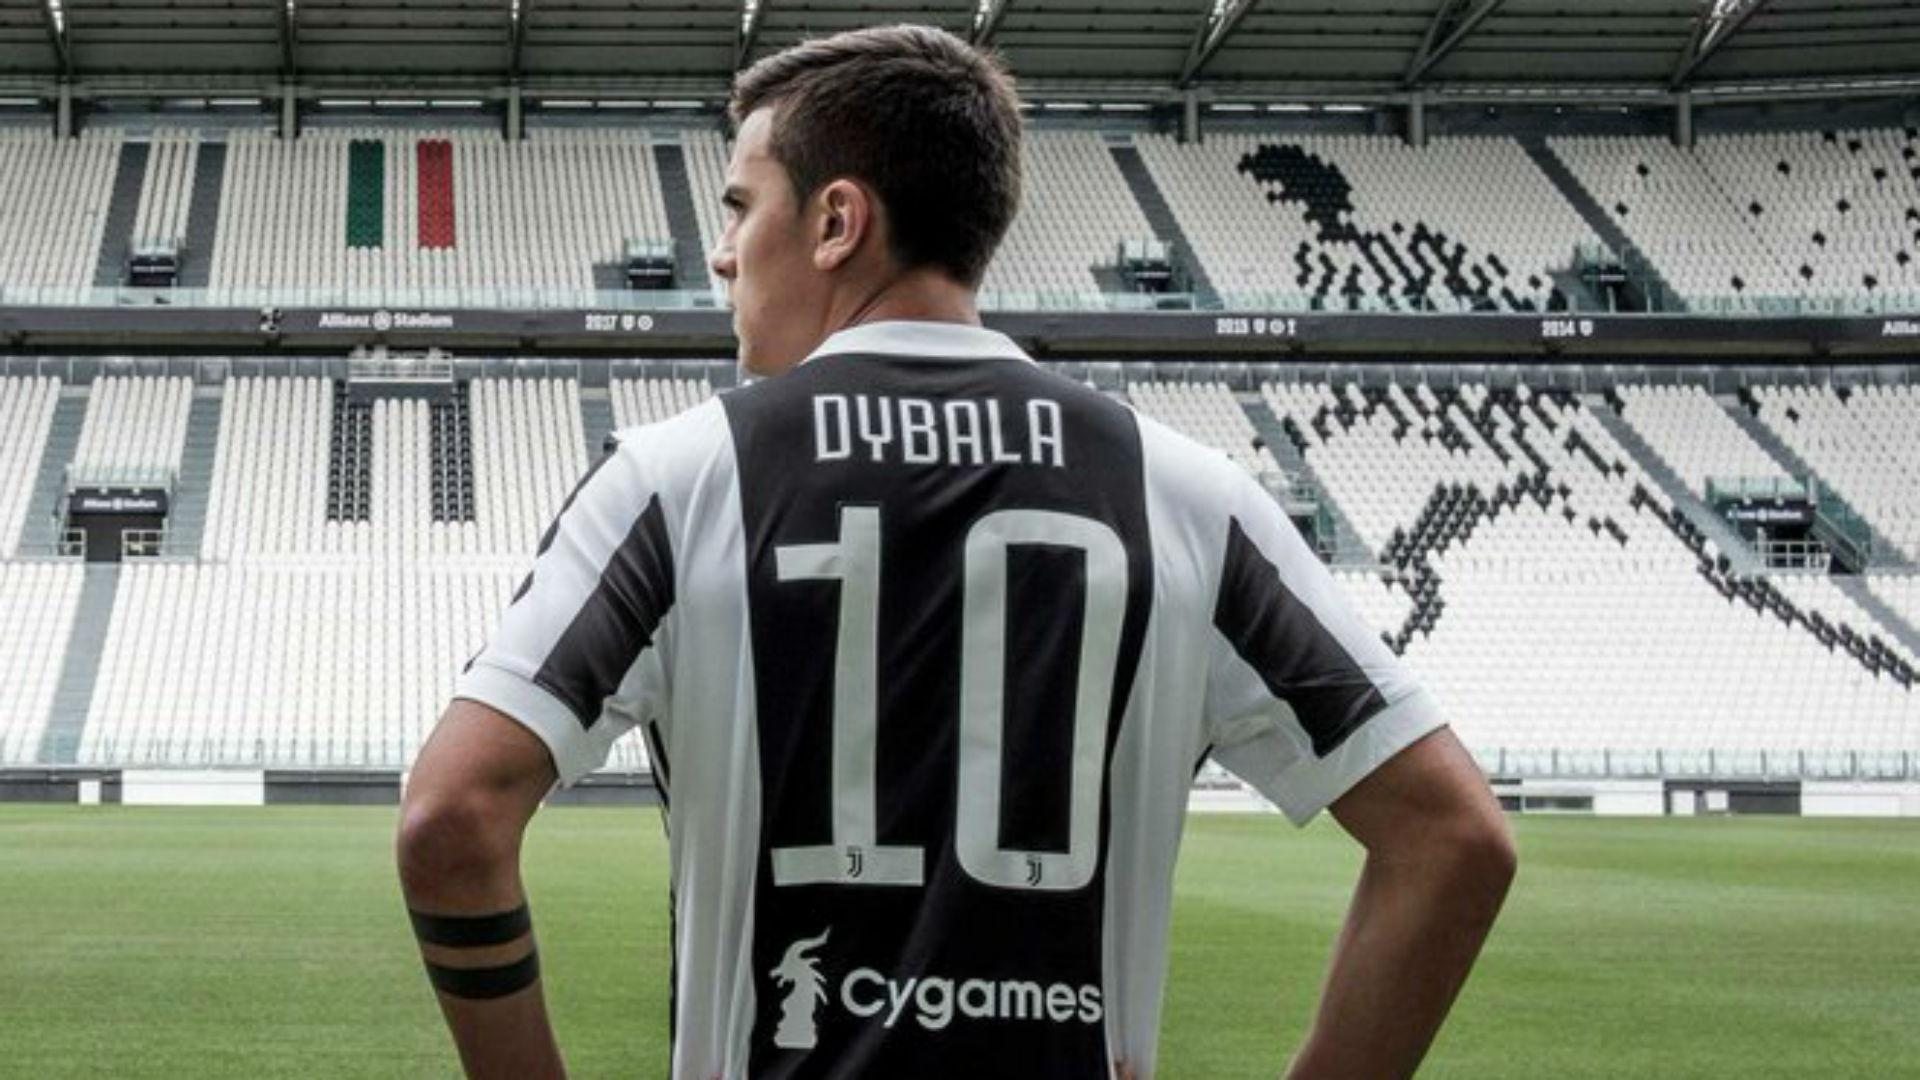 online retailer f4b96 6bdcc Dybala: Juventus number 10 shirt a childhood dream